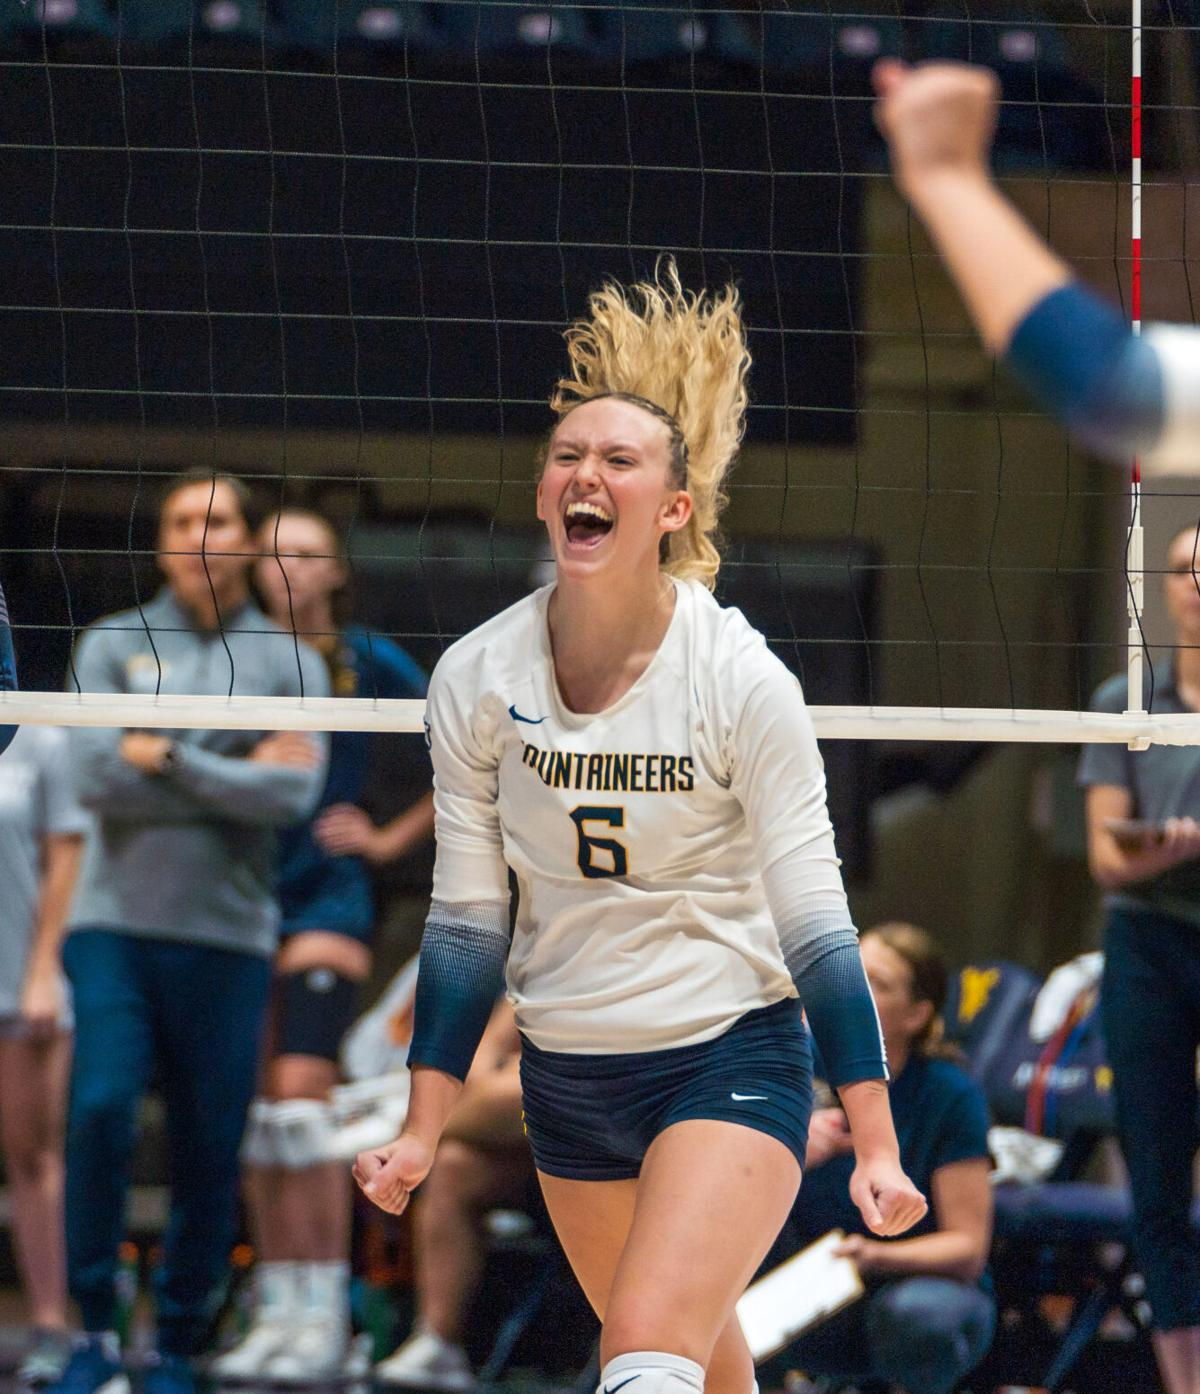 Lacey Zerwas (6) celebrates during WVU Women's volleyball exhibition match against Kent State on Aug. 20, 2021.